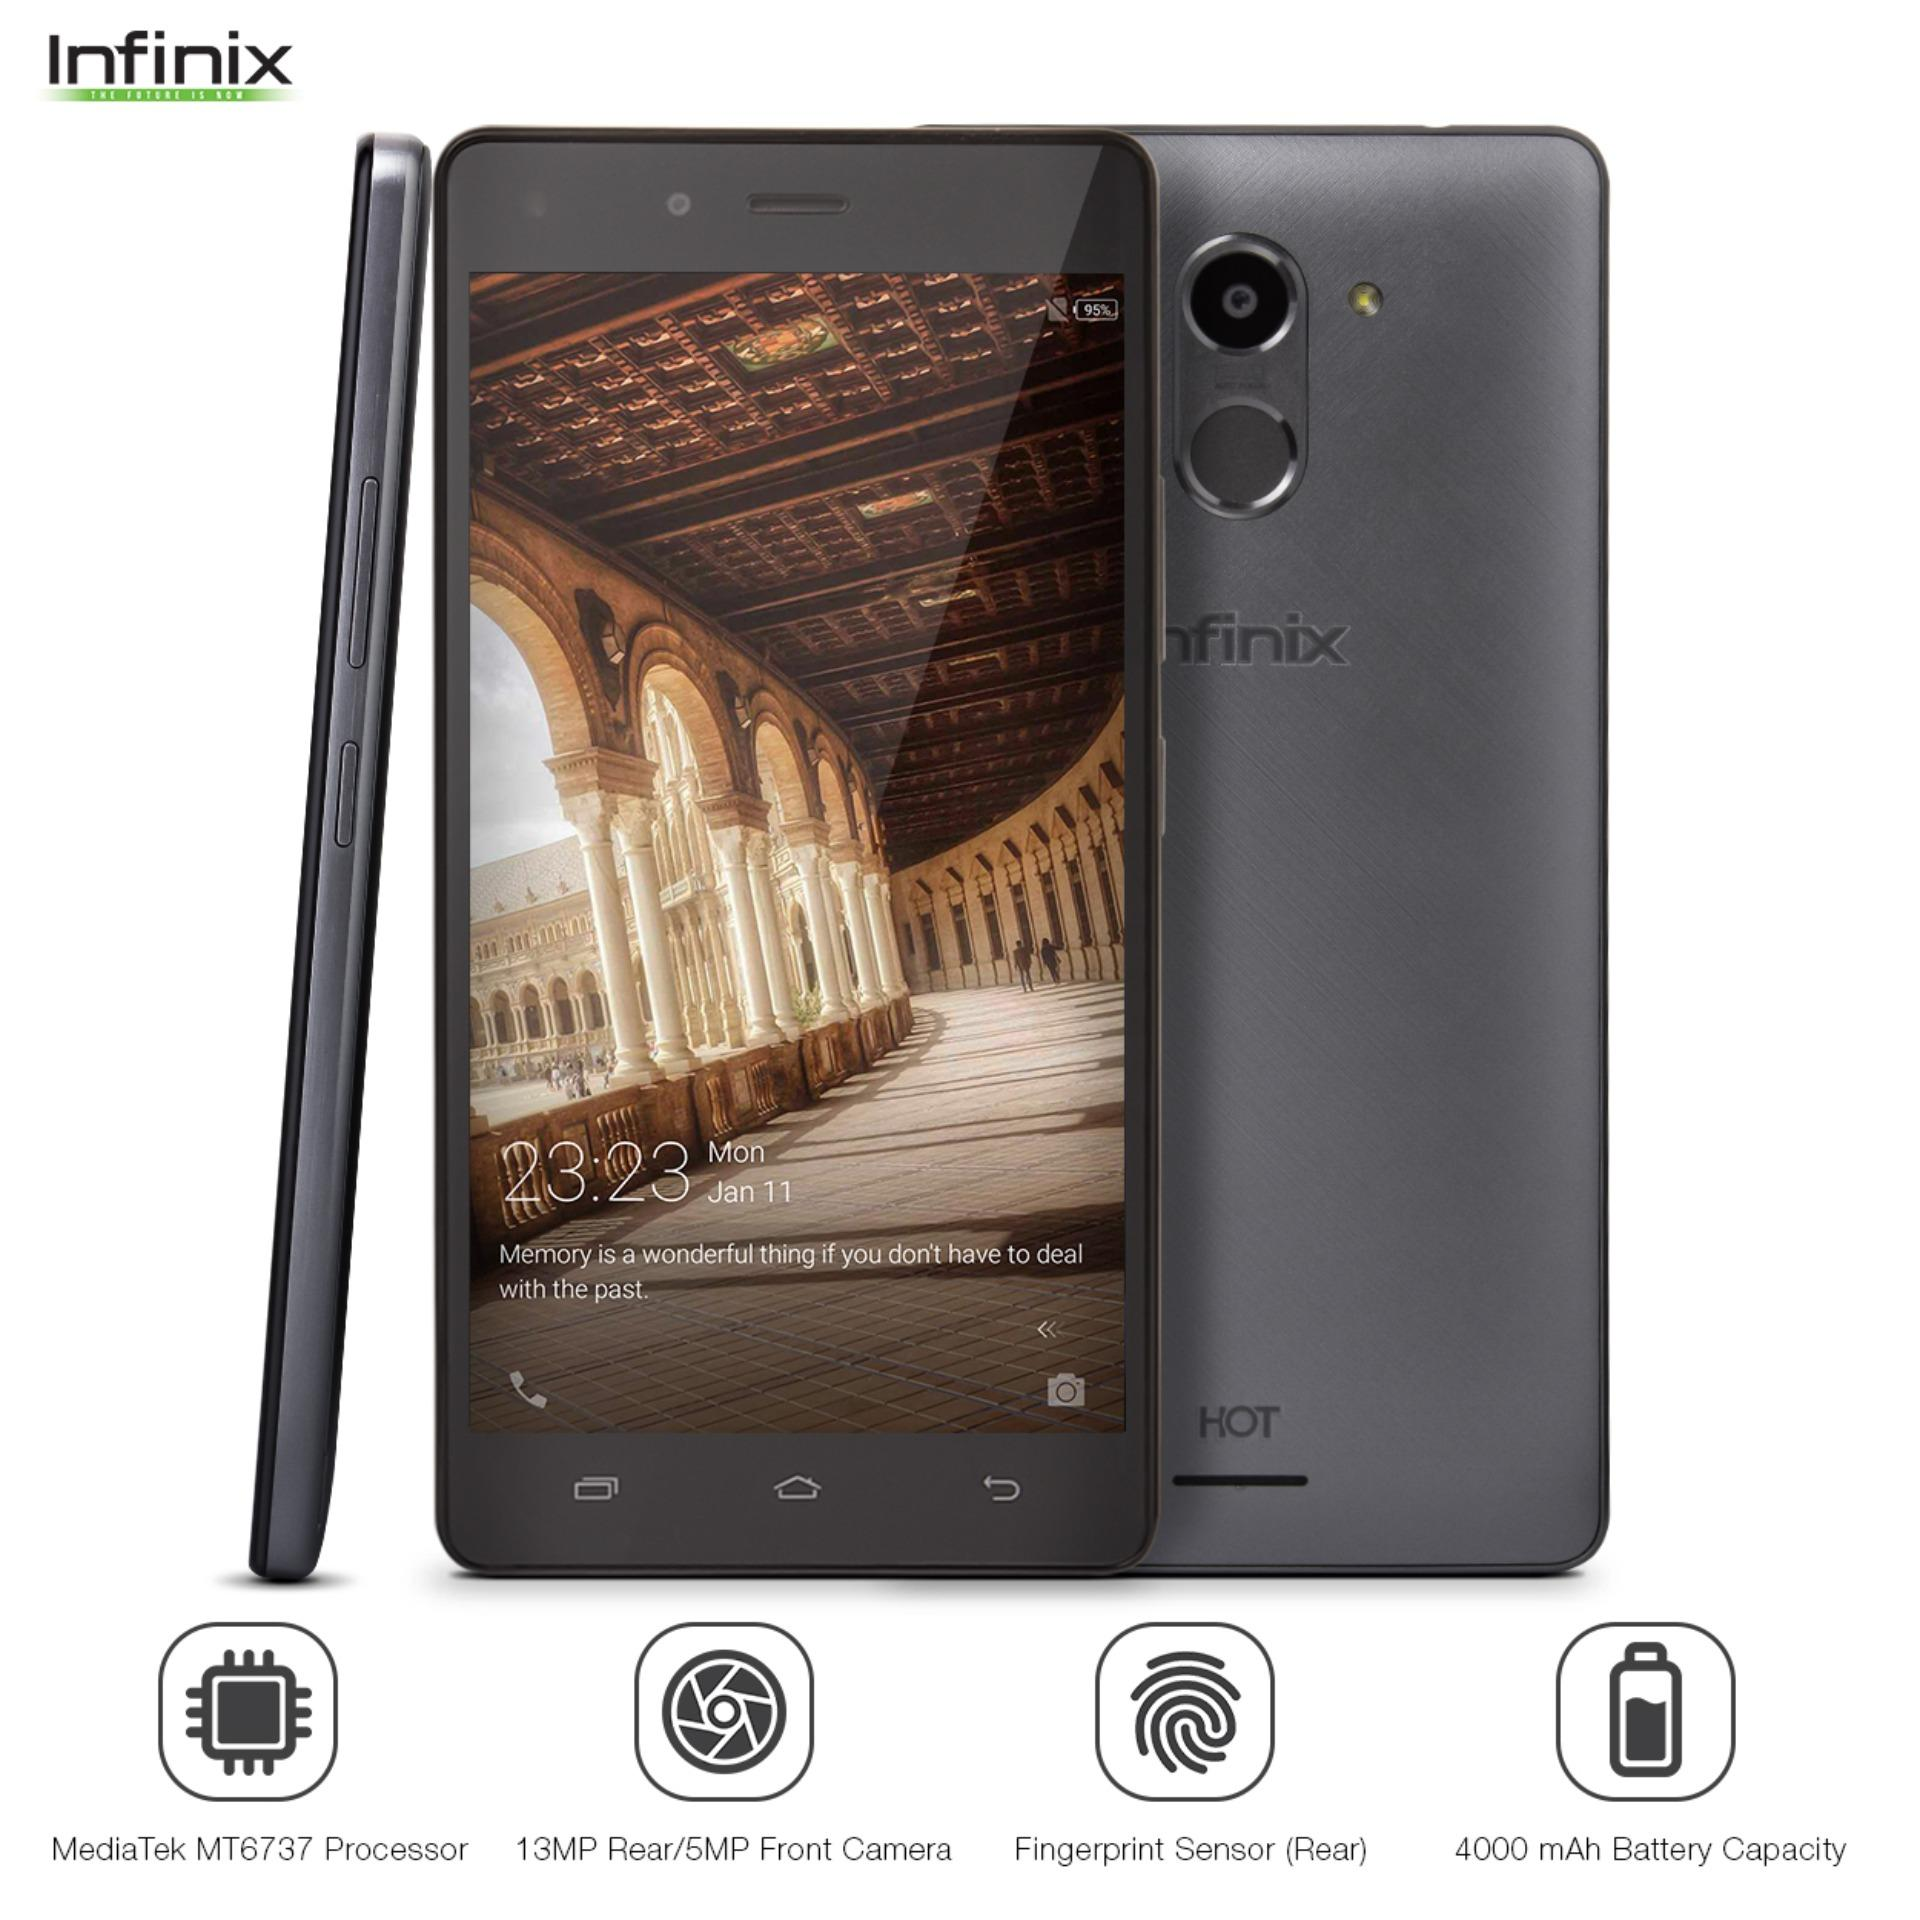 Infinix Philippines Cellphone For Sale Prices Reviews Voucher 3 Gm 2gb Hot 4 Pro X556 16gb Rom Ram Anthracite Gray